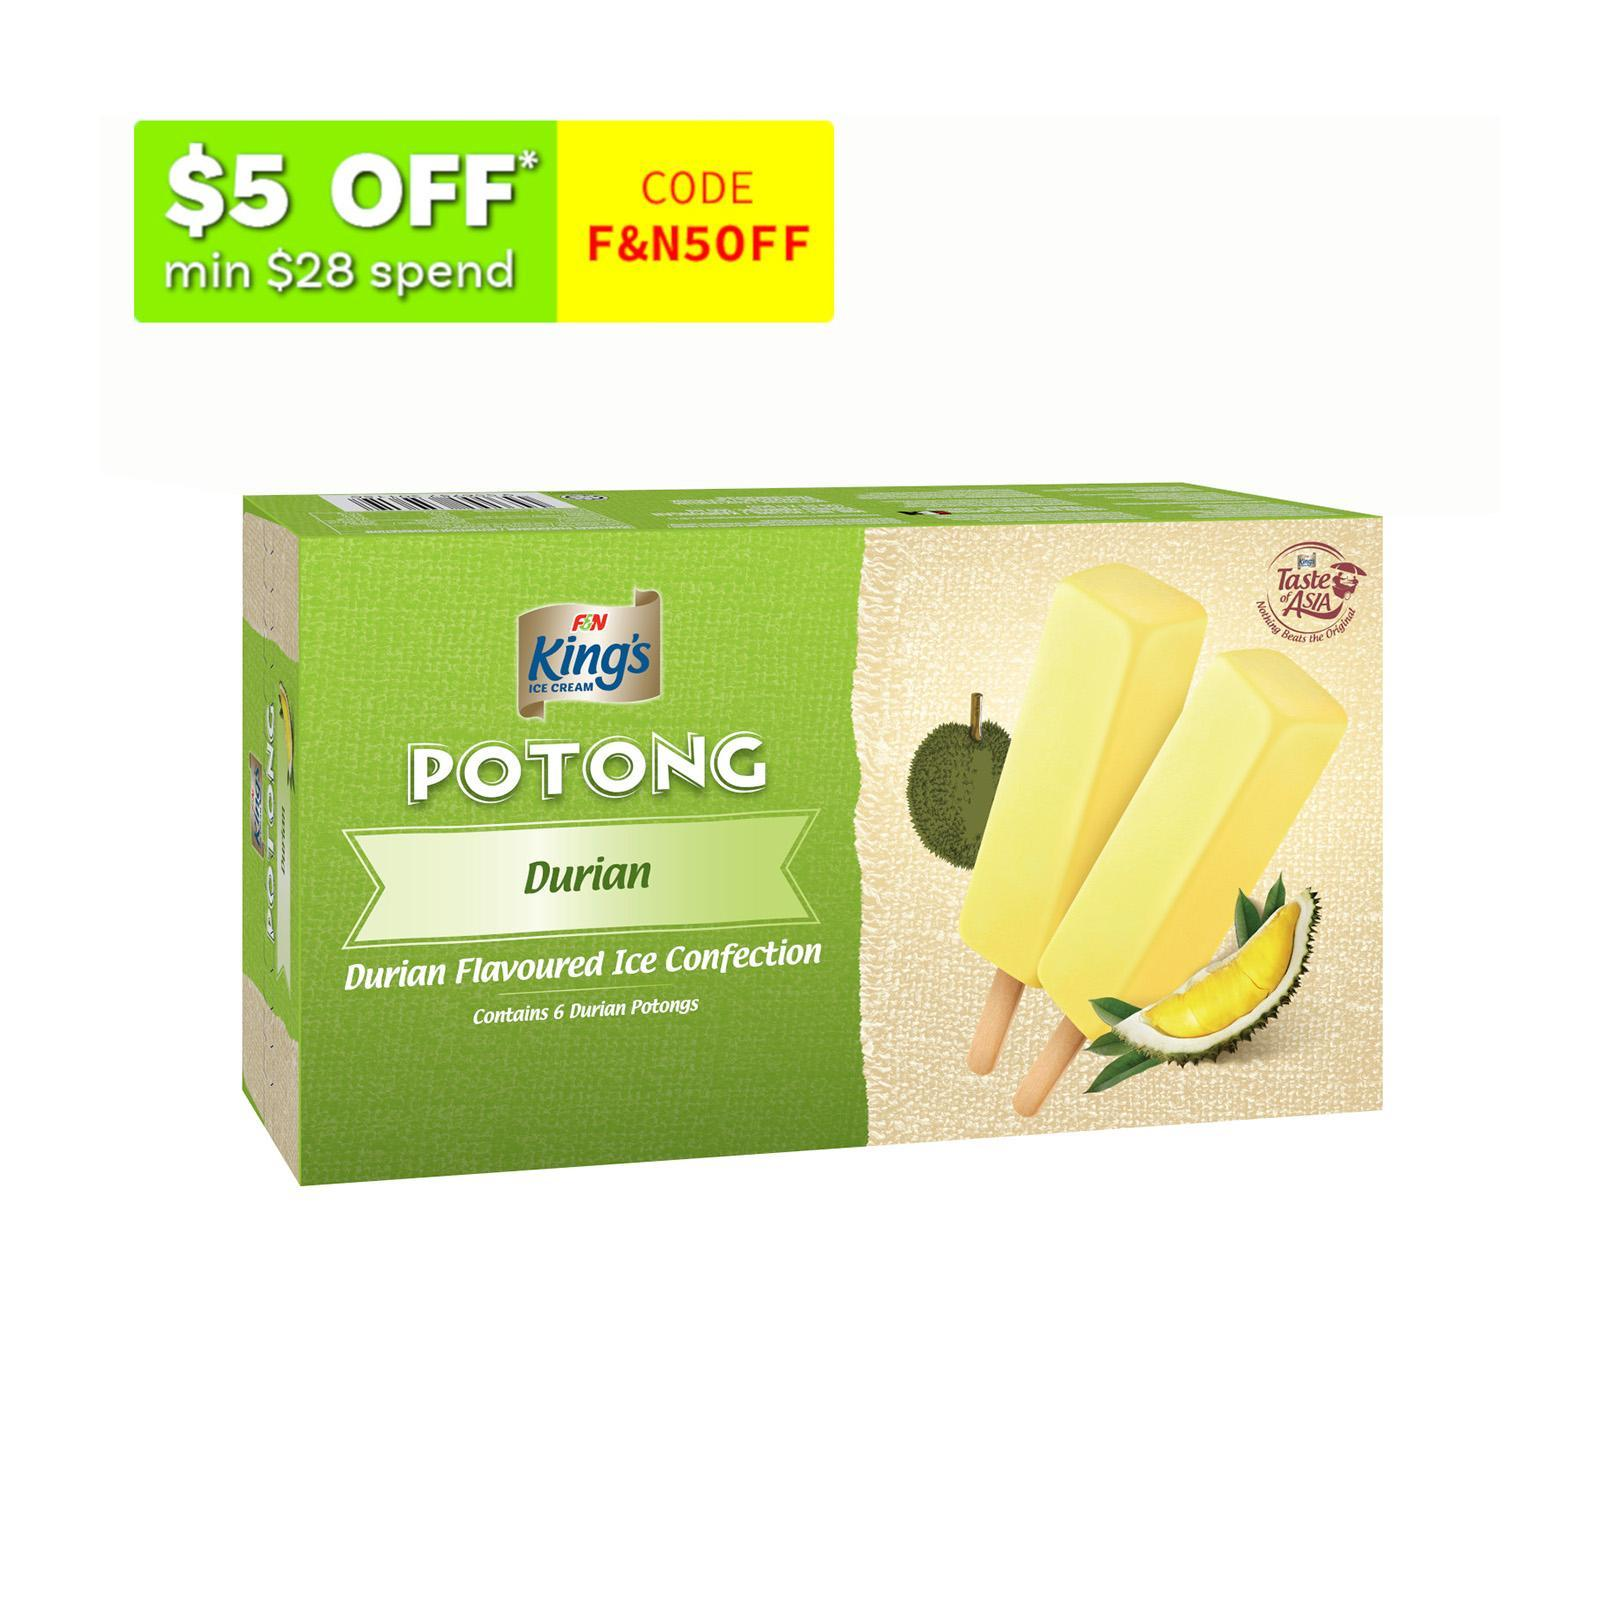 King's Potong Durian Flavoured Ice Confection - Frozen